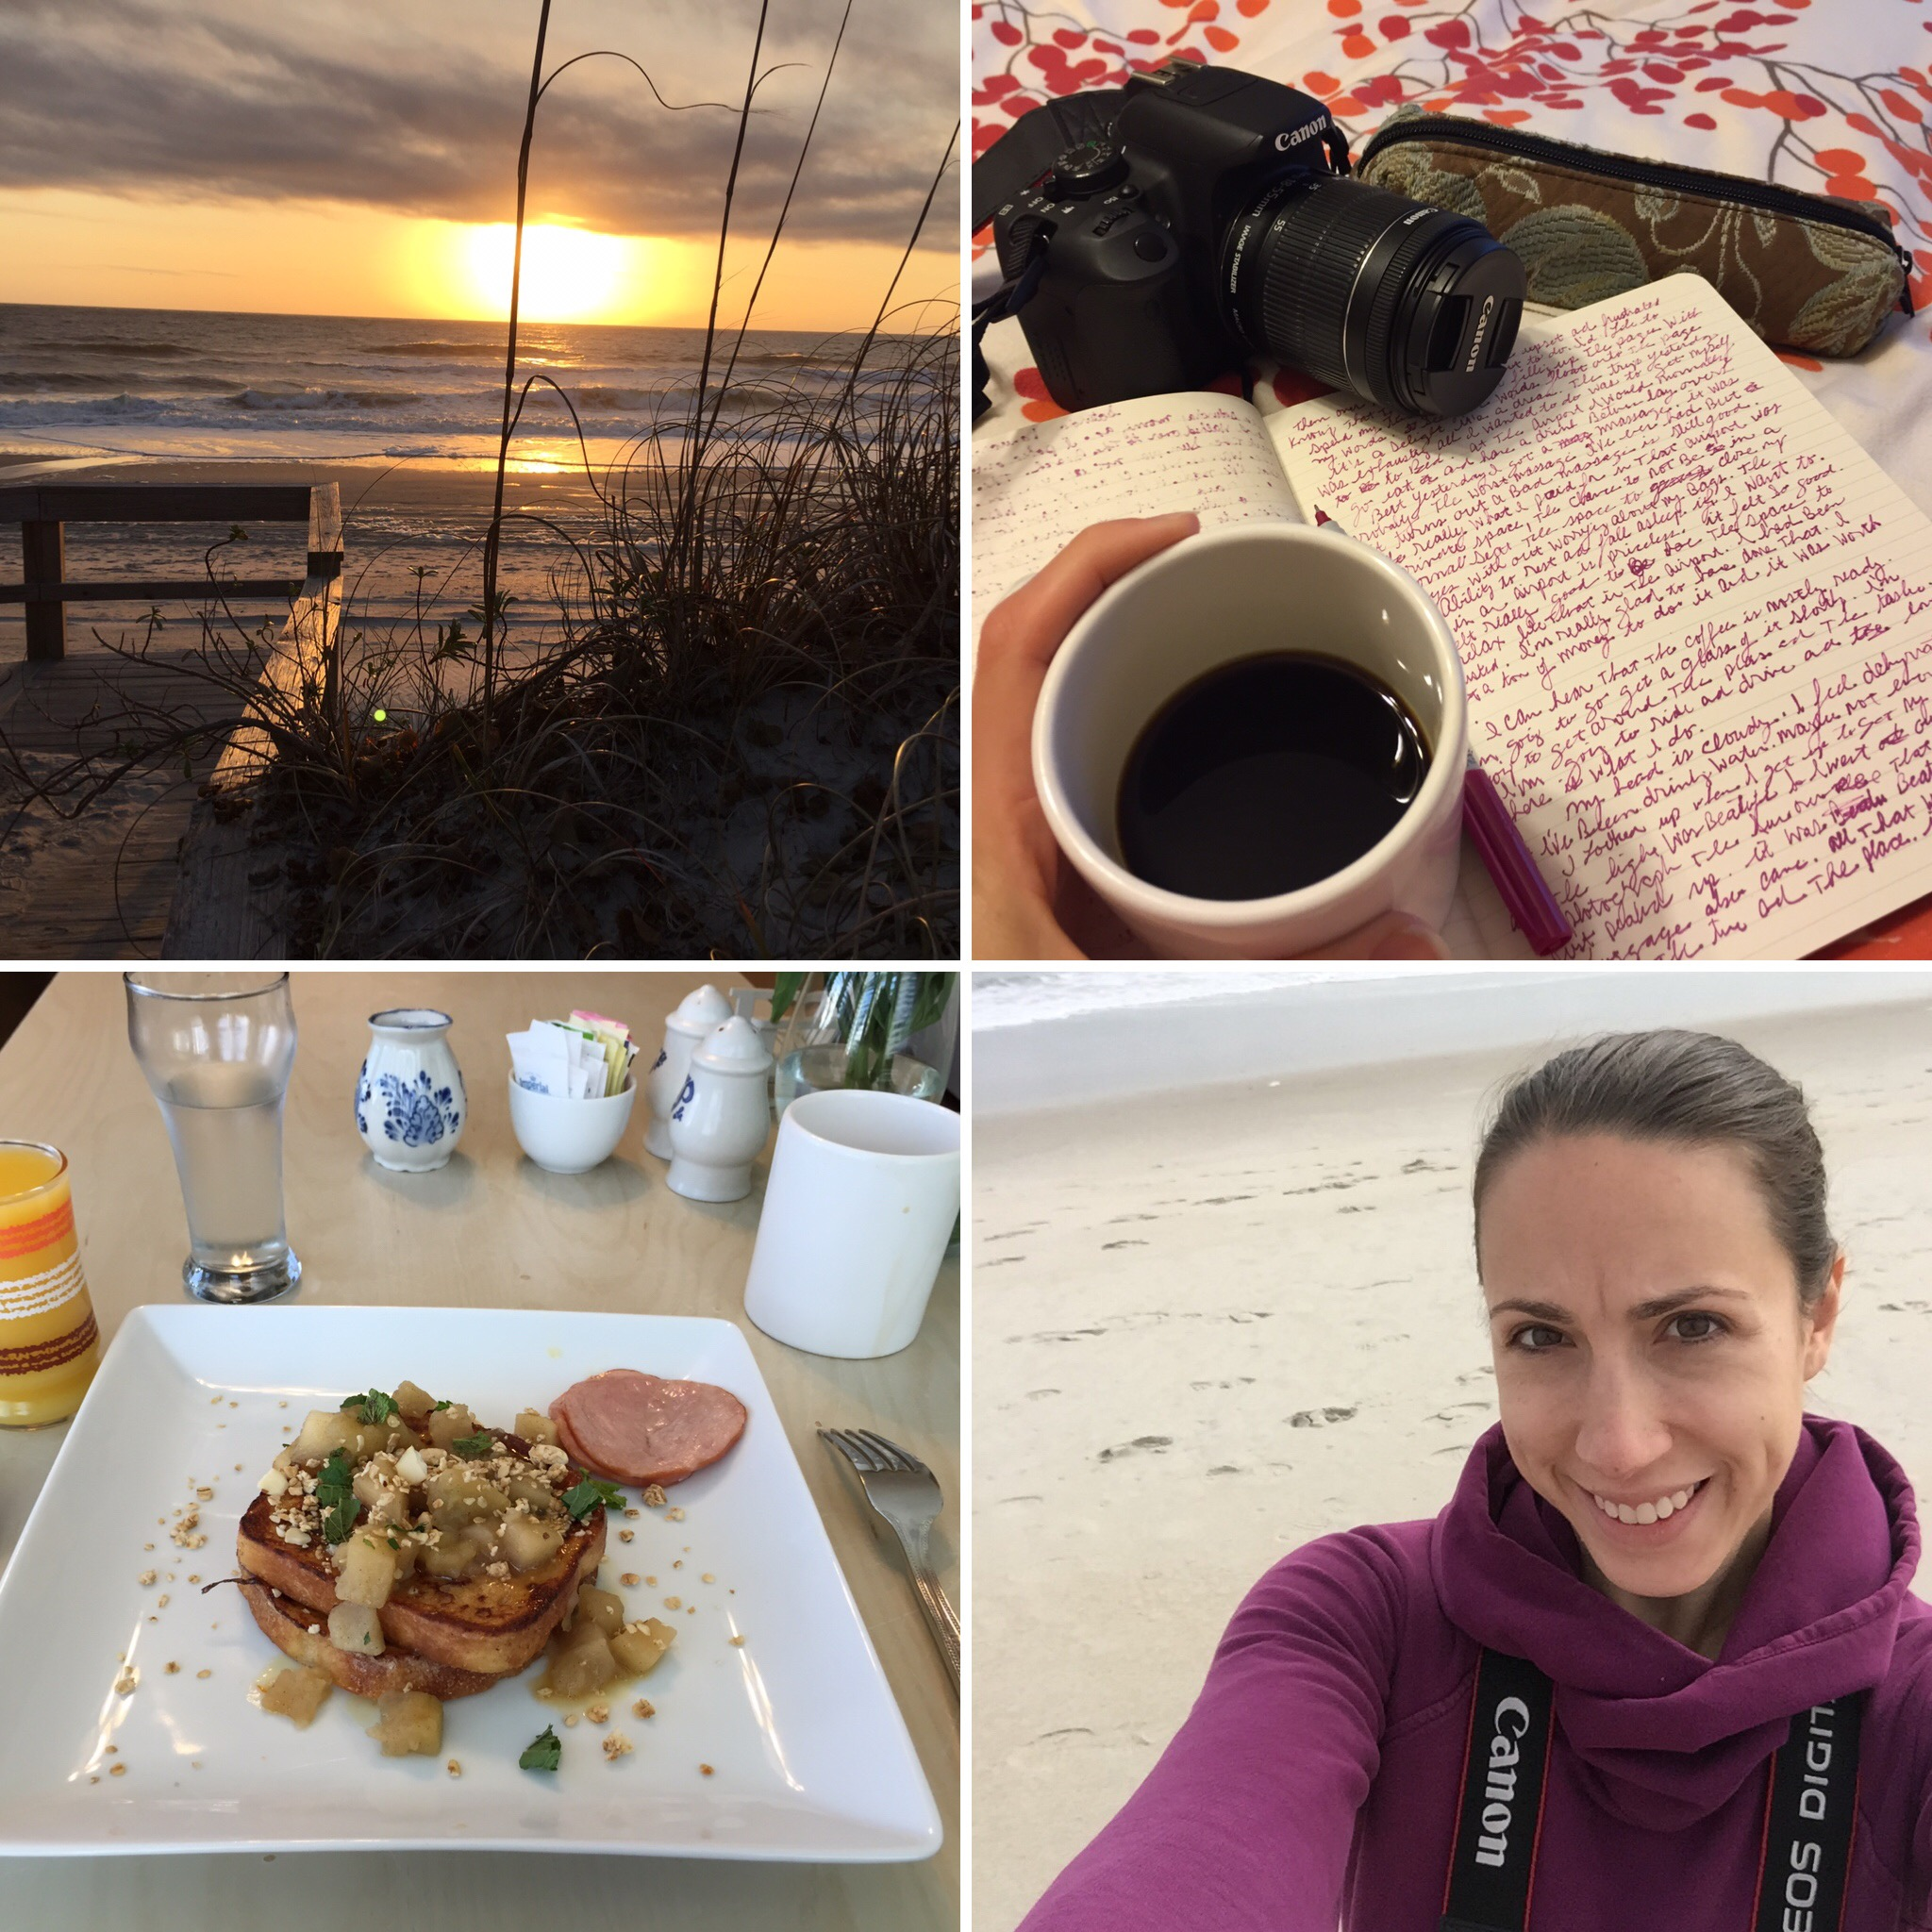 Watched the sunrise in silence every morning. Mike at Beacon House Inn cooked up the most incredible breakfasts! Oodles of writing and walking.